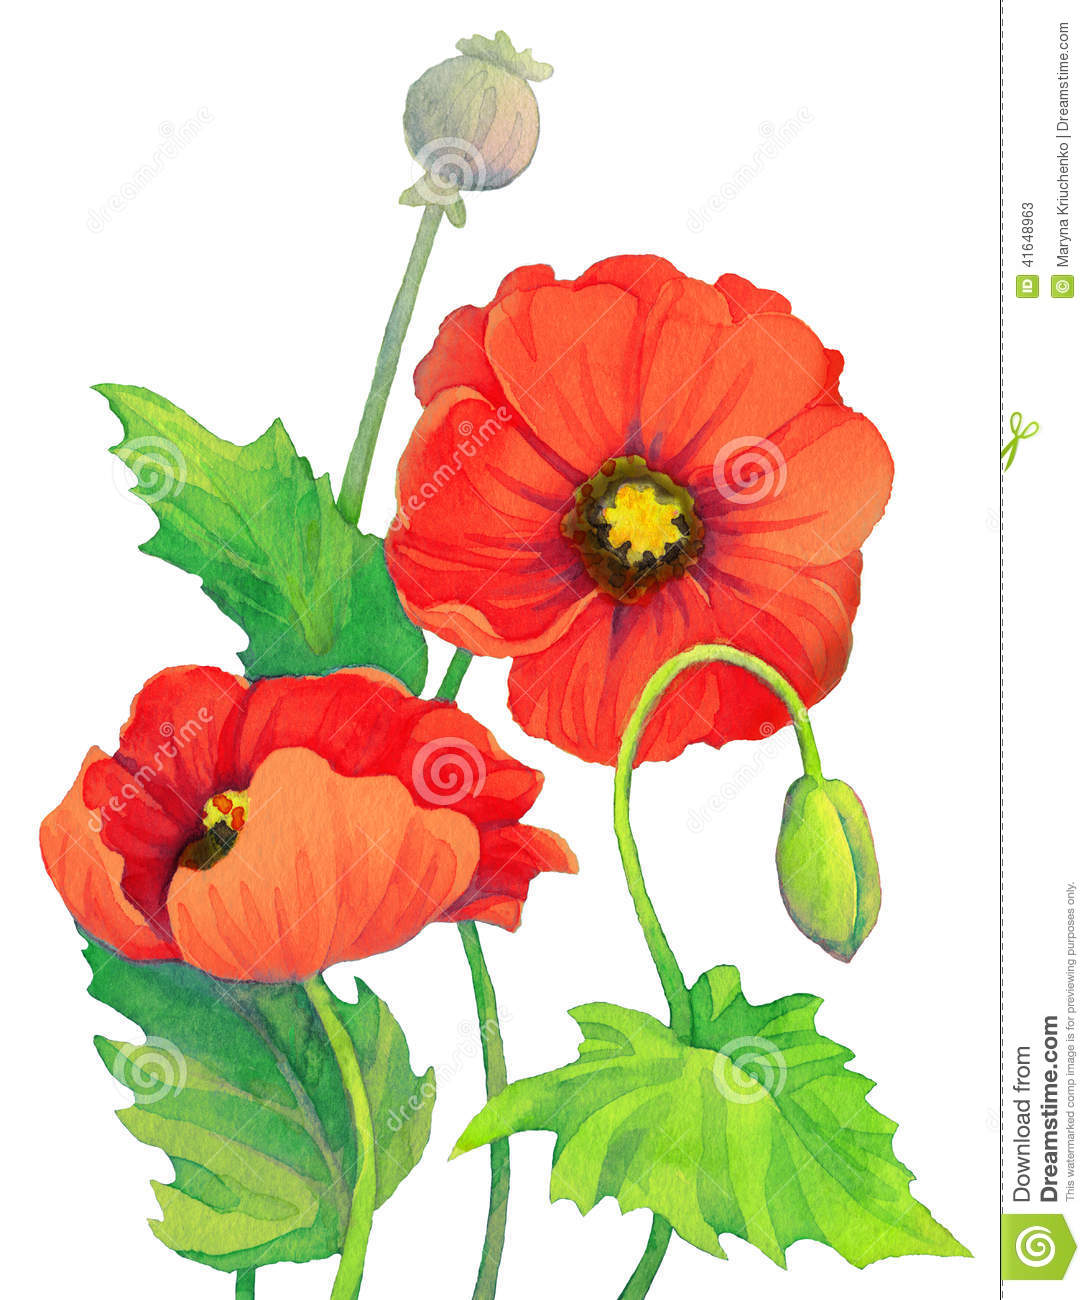 Watercolor Red Poppies. Flowers, Bud And Capsule Poppy Head Stock.